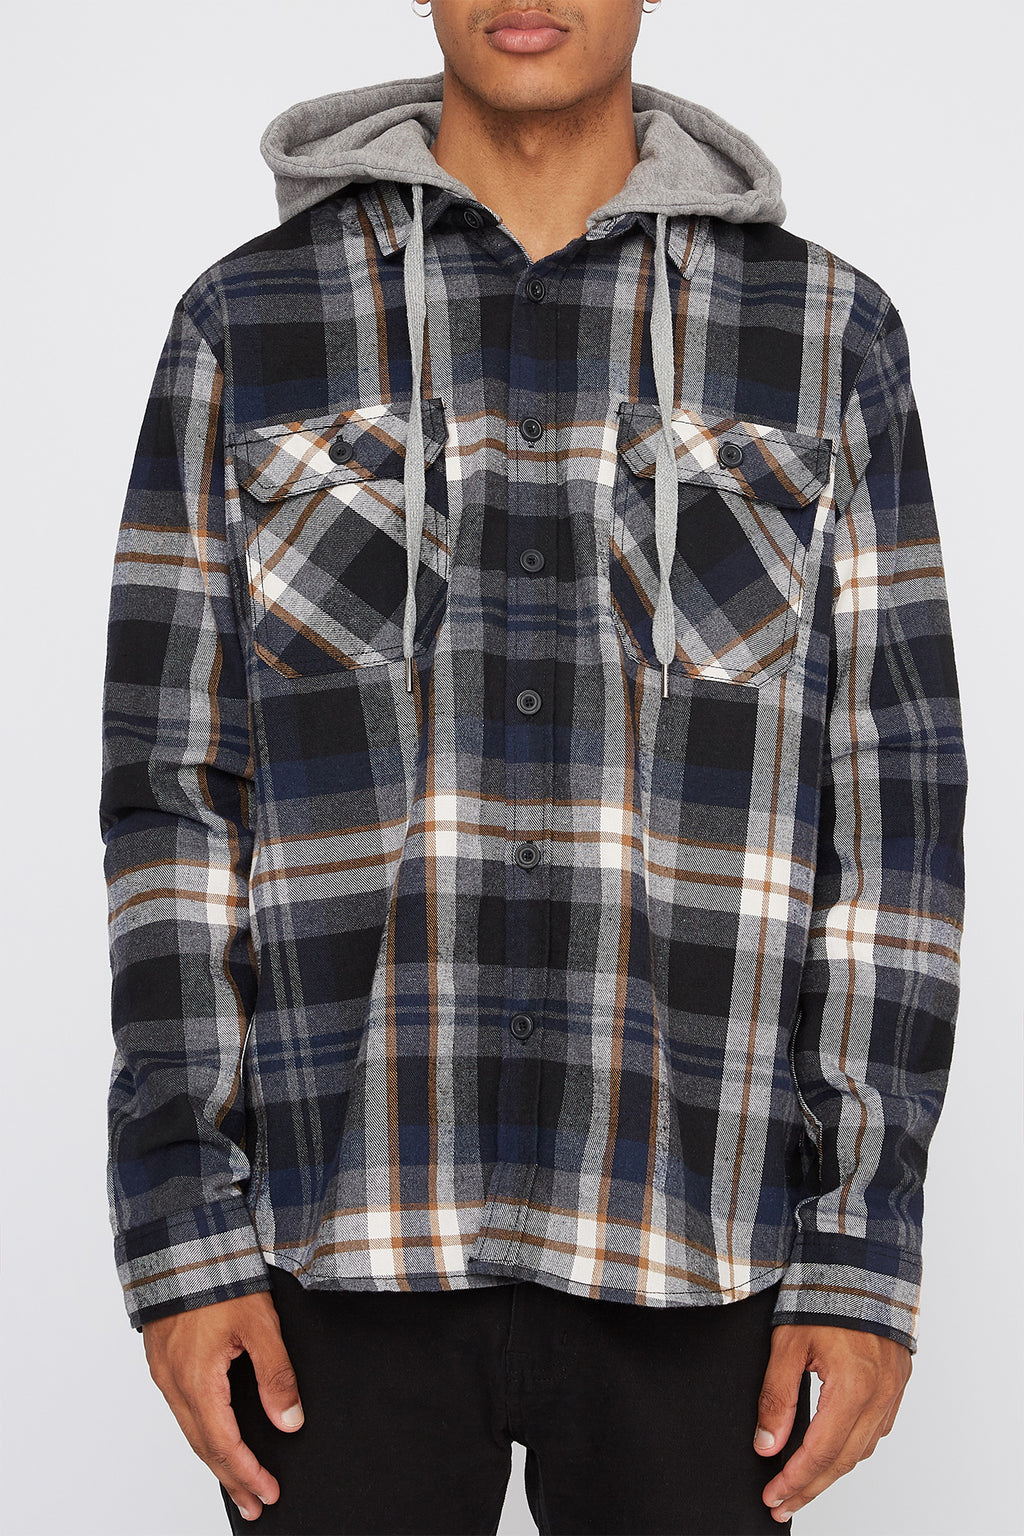 West49 Mens Hooded Flannel Plaid Shirt